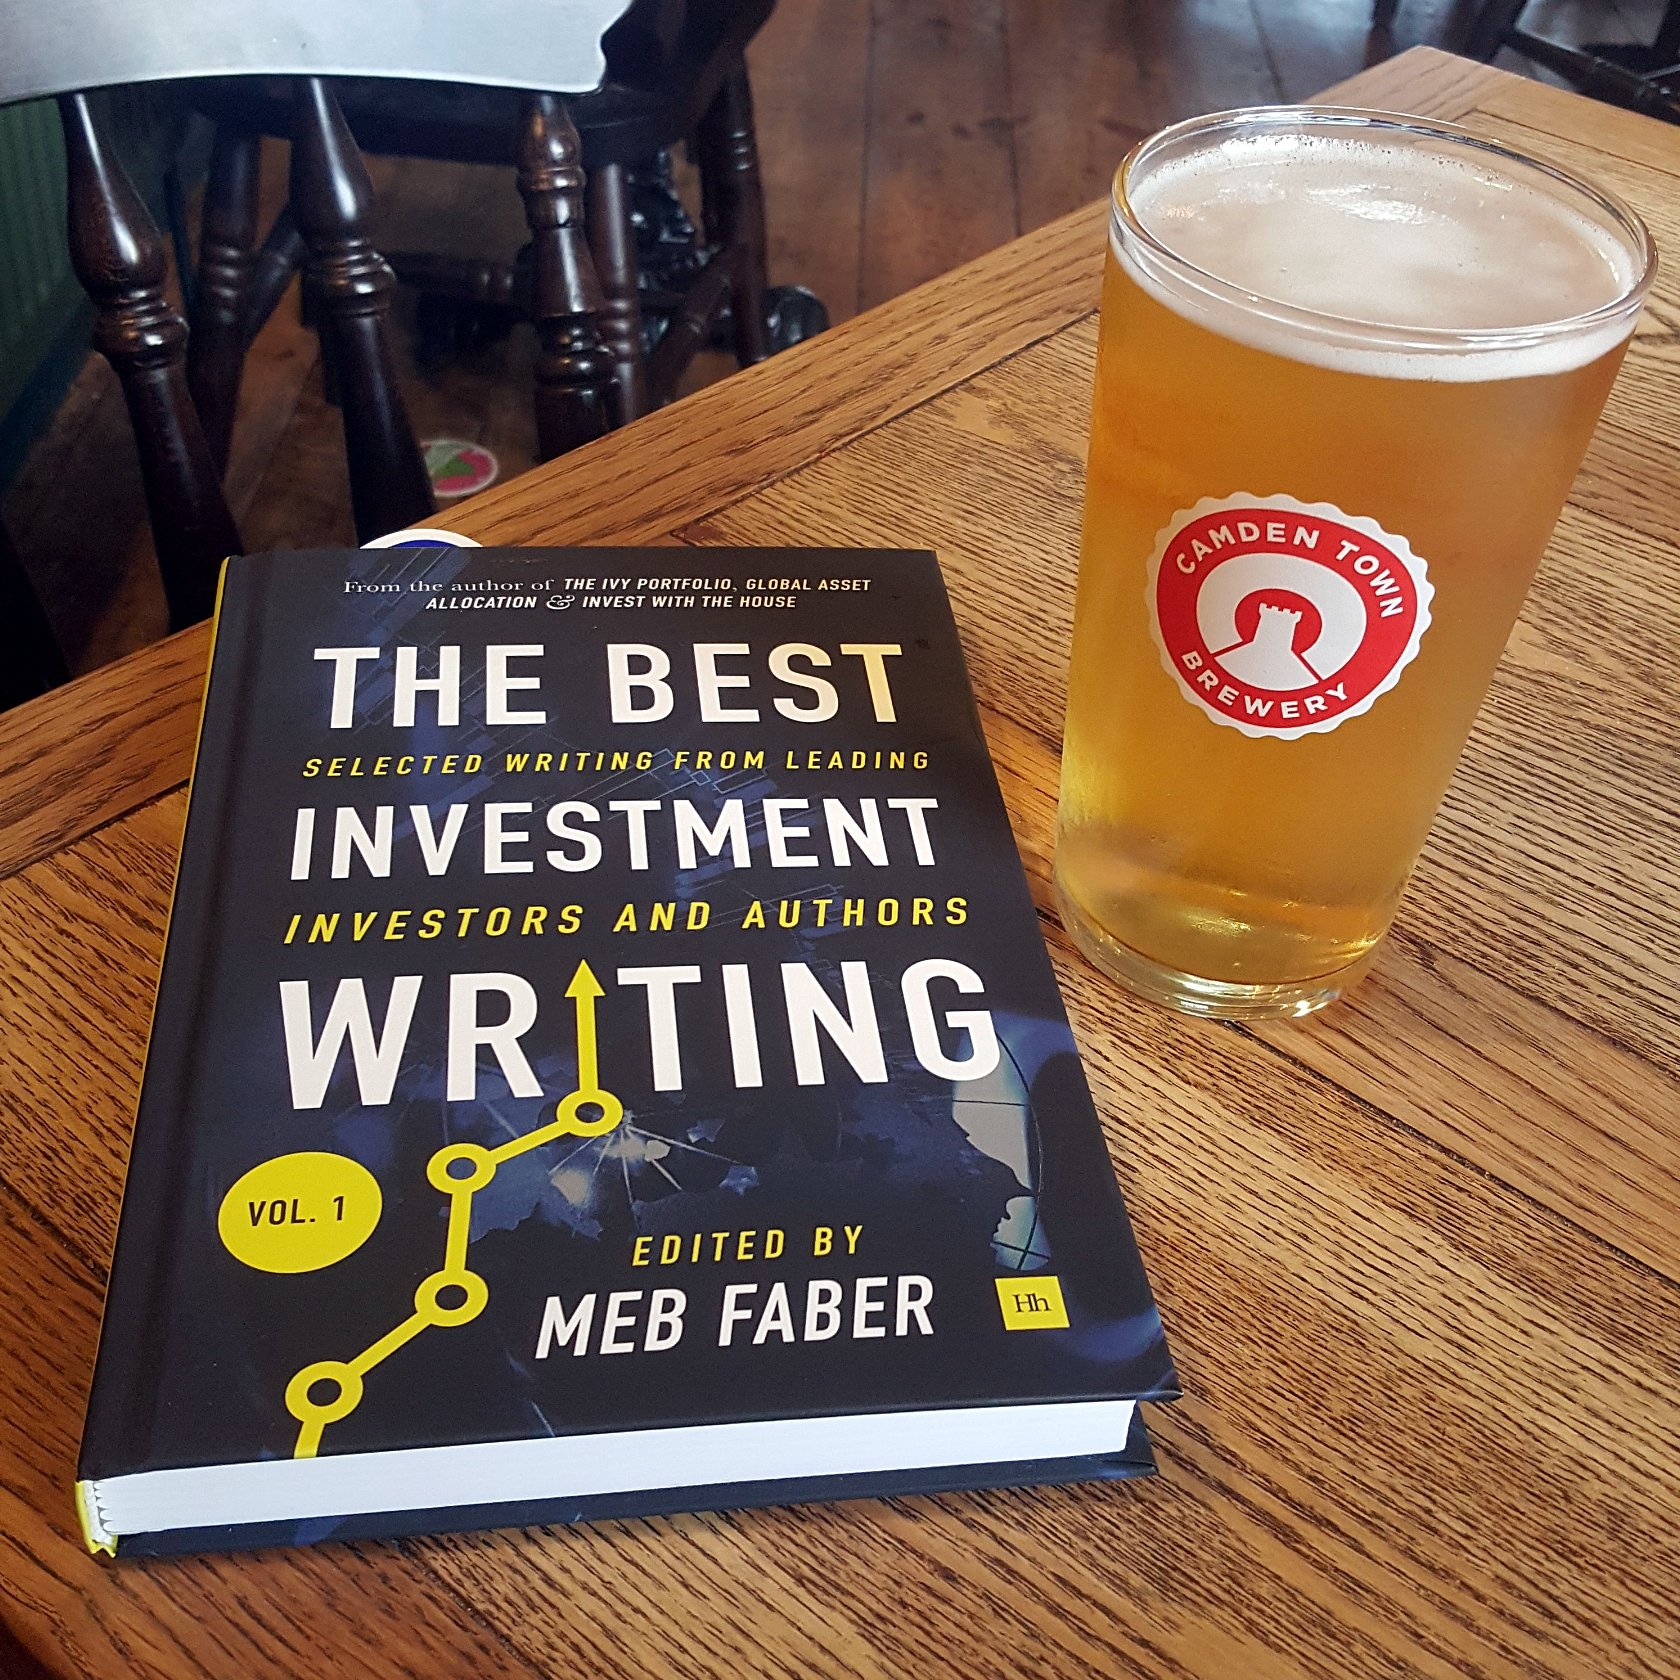 Back from my holiday. Picked the book up whilst in the US. Beer all London 🍺. @MebFaber & his friends👌 https://t.co/jFfLwrgsm7